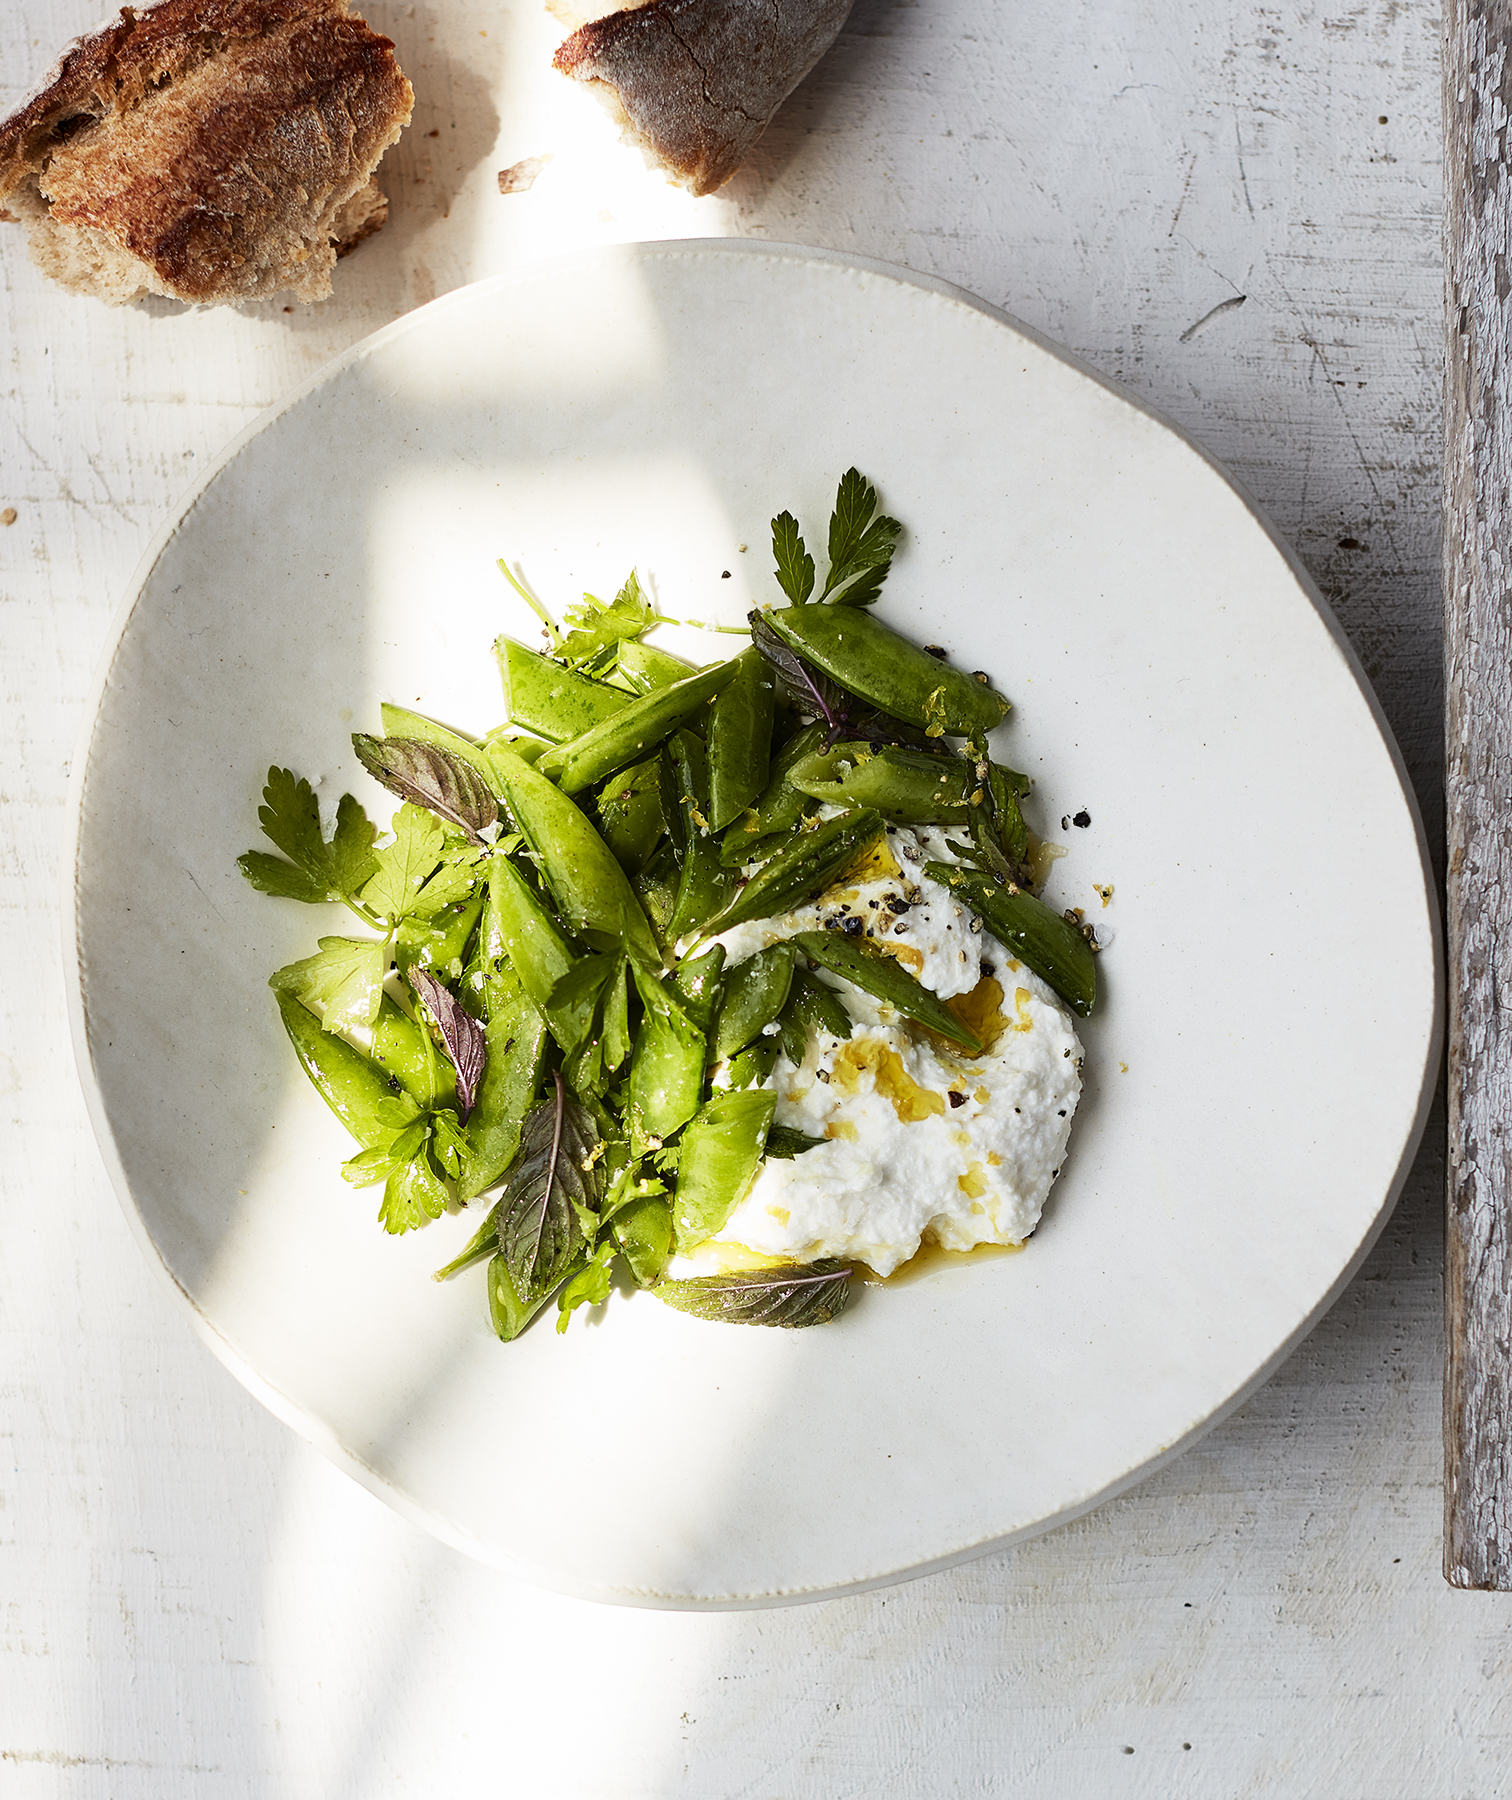 Sugar Snap Peas With Lemon Ricotta, Mint, and Parsley